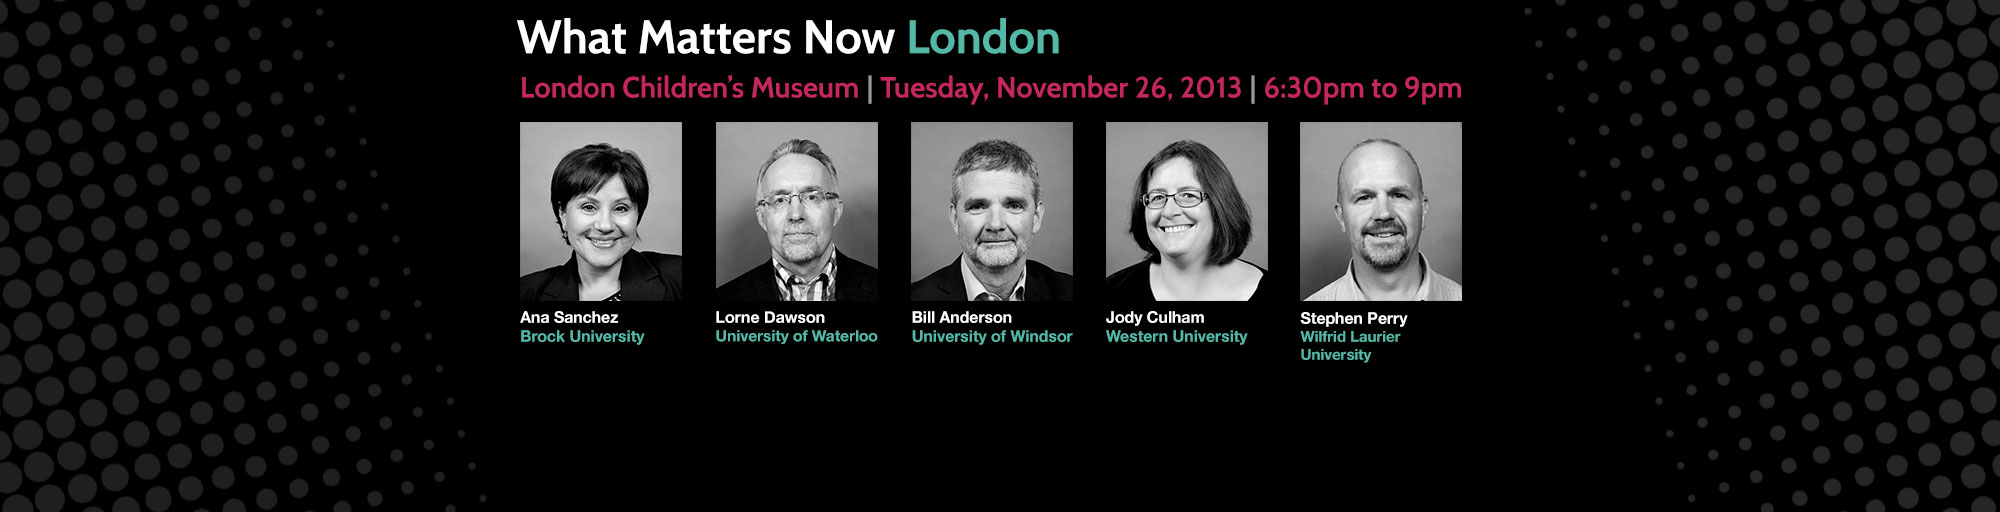 What Matters Now London Video Podcast